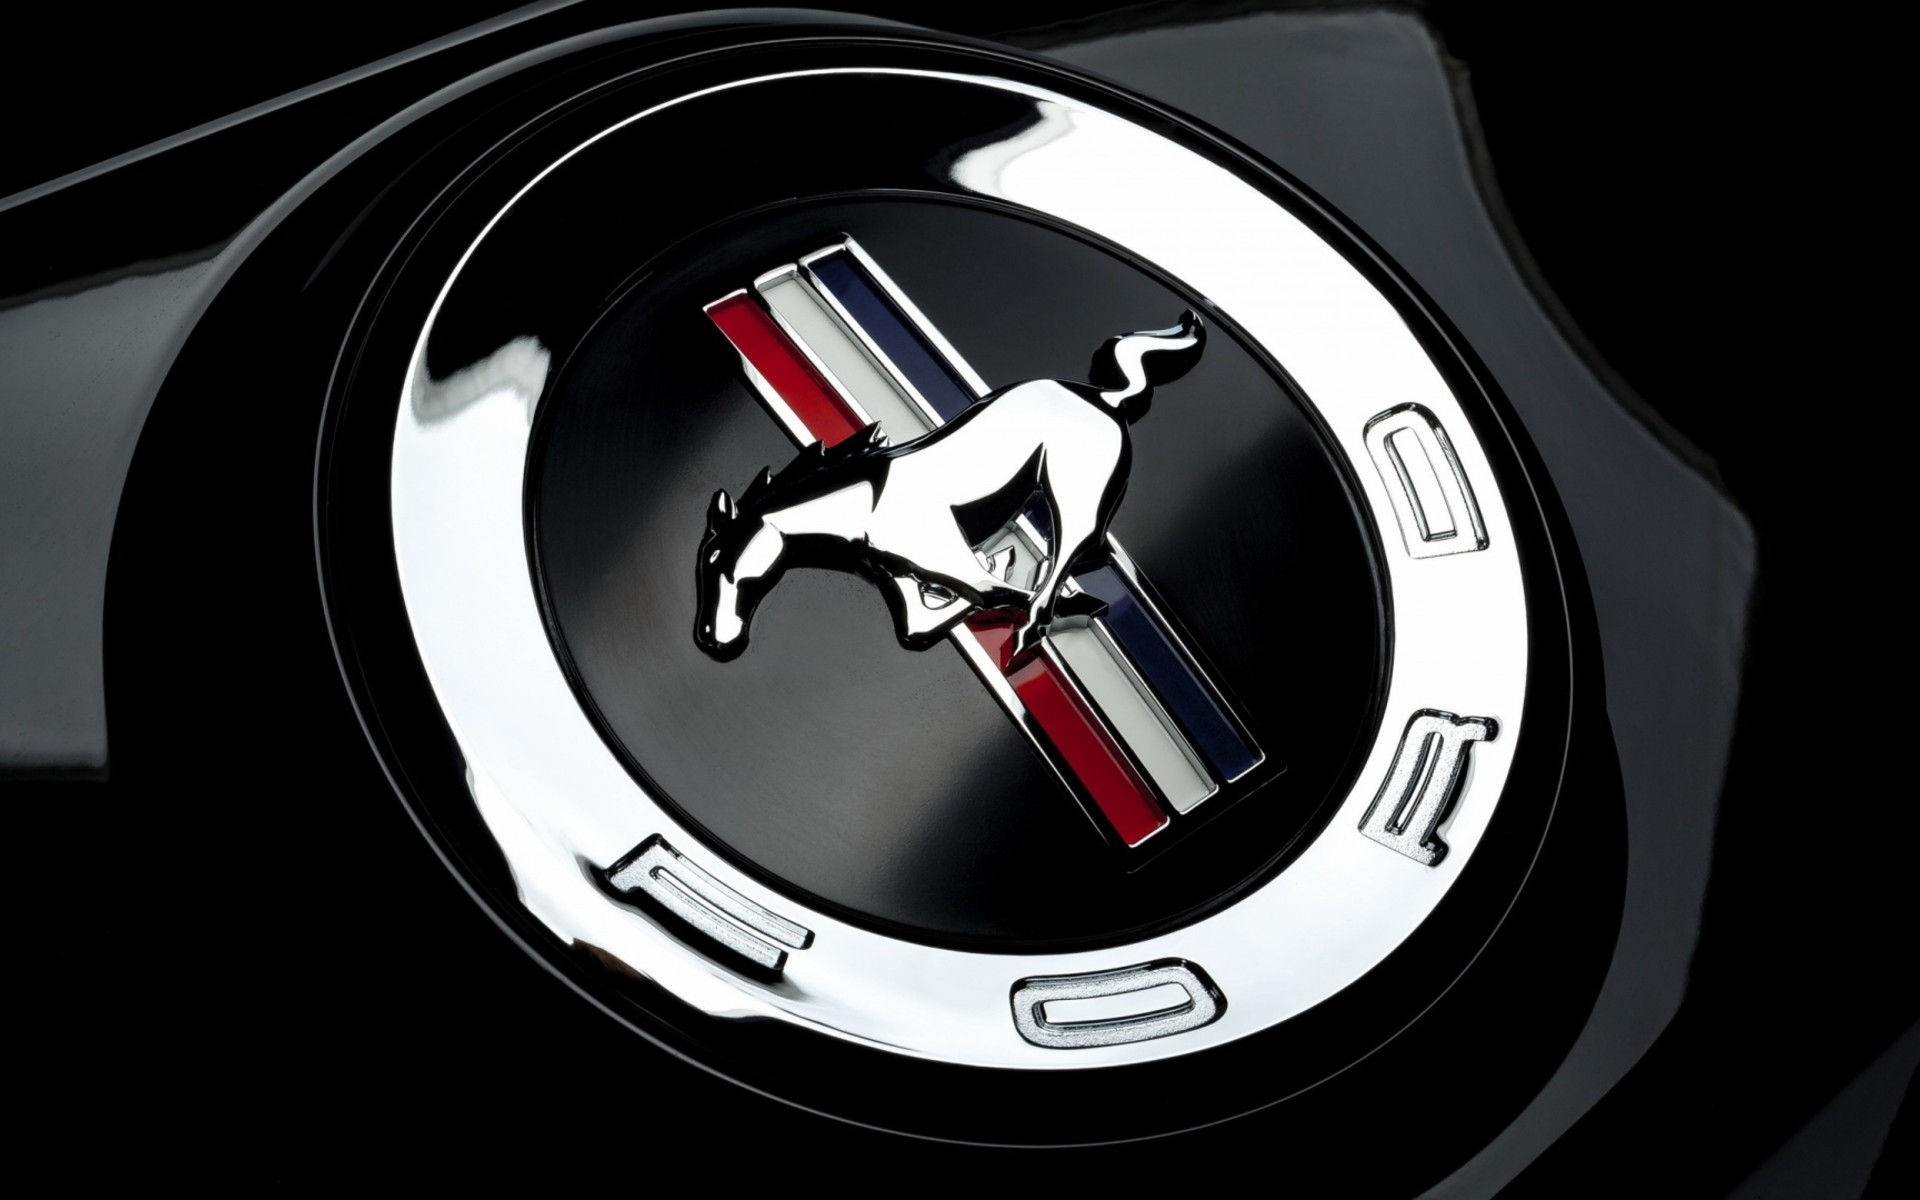 Ford Mustang Logo Wallpaper Hd 3d Logo Brands For Free Hd 3d